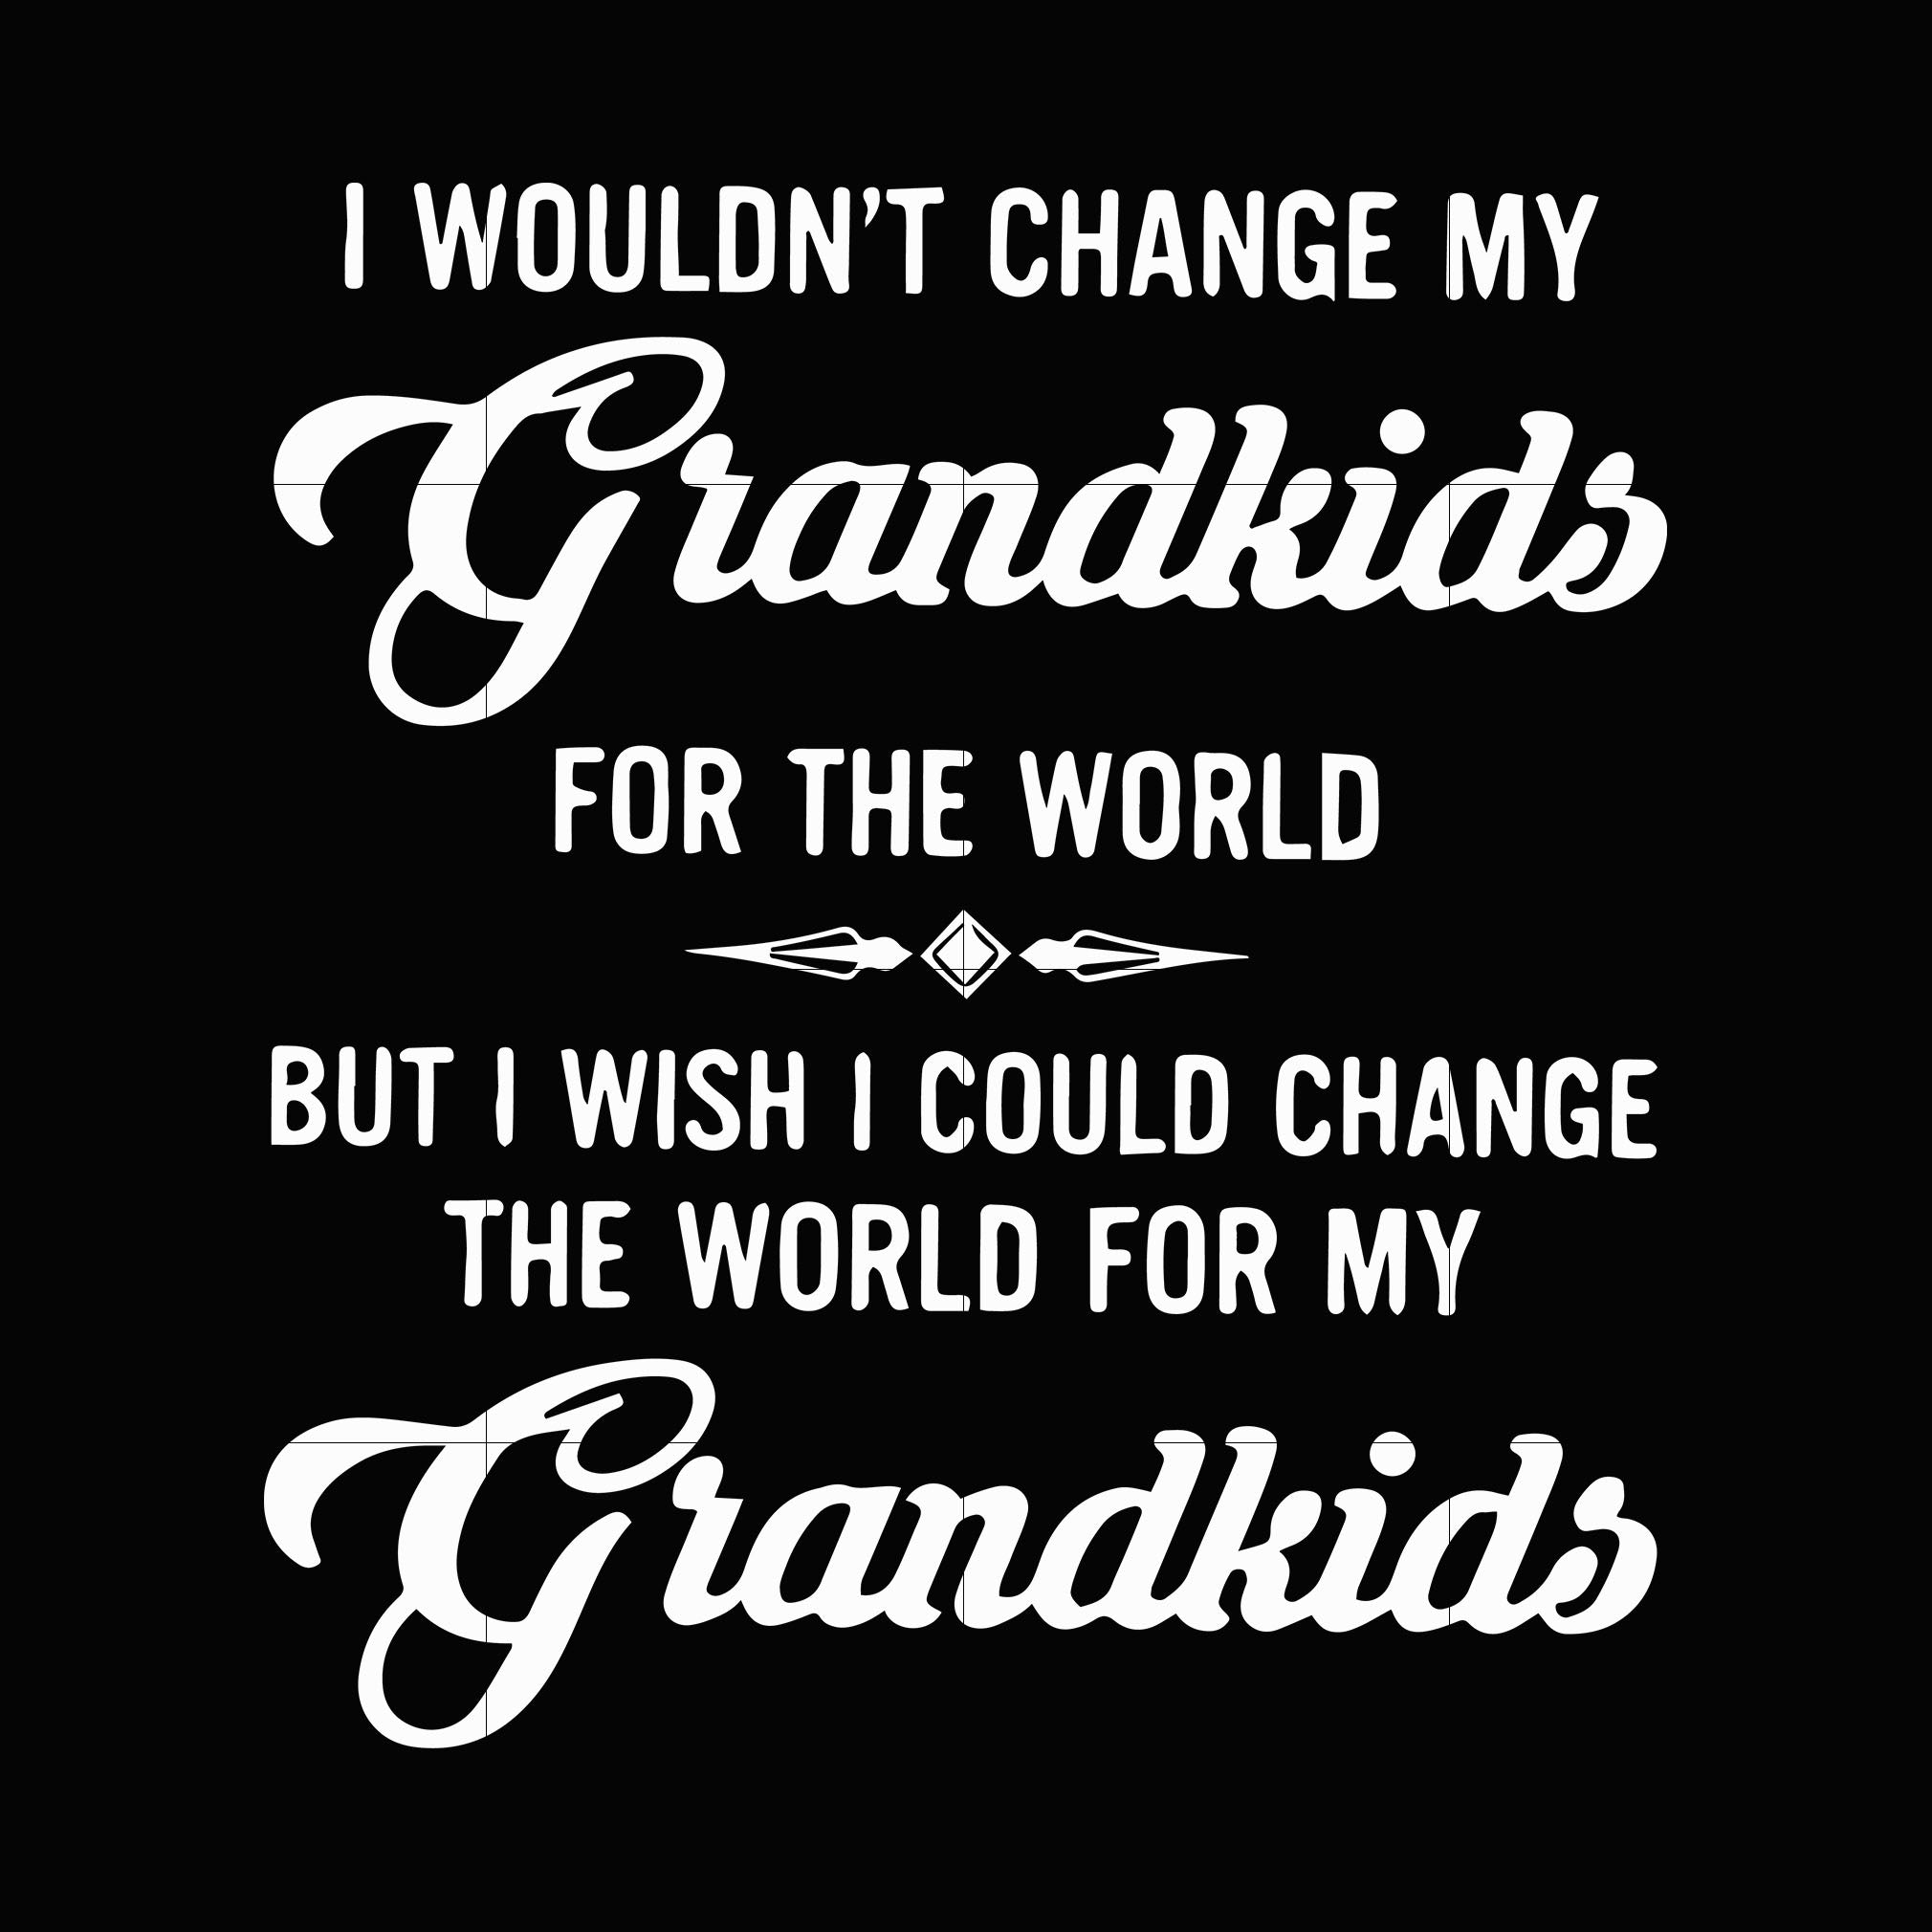 I wouldn't change my grandkids for the world but i wish i could change the world for my grandkids svg ,dxf,eps,png digital file